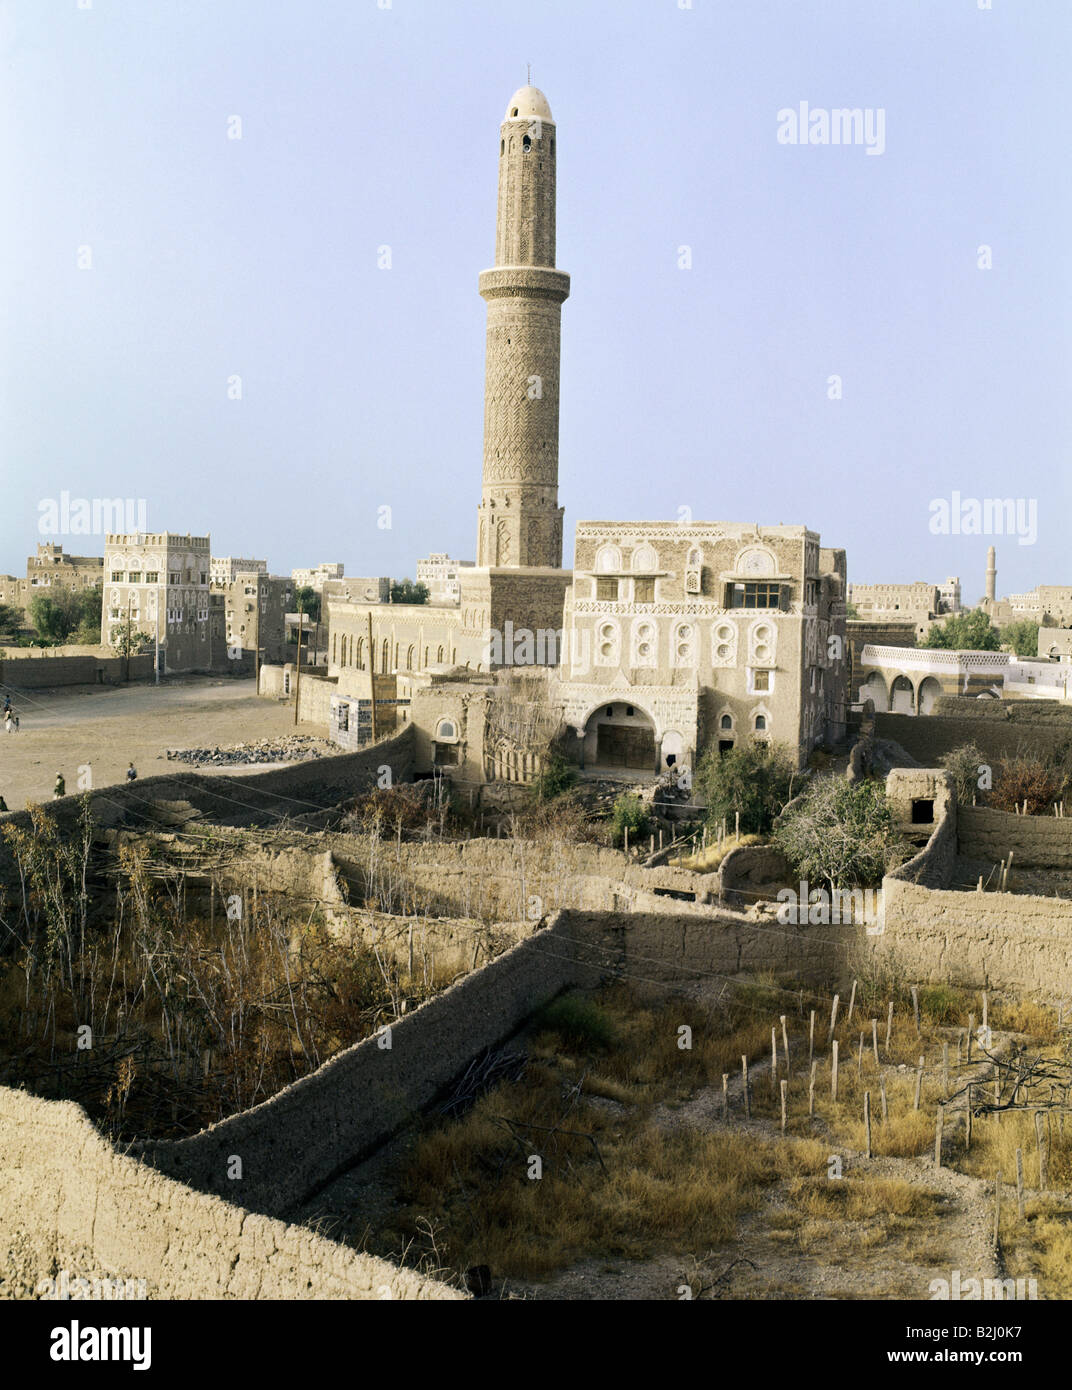 geography / travel, Yemen, Sanaa, mosque, northern, minaret, islam, capital, UNESCO World Cultural Heritage Site - Stock Image